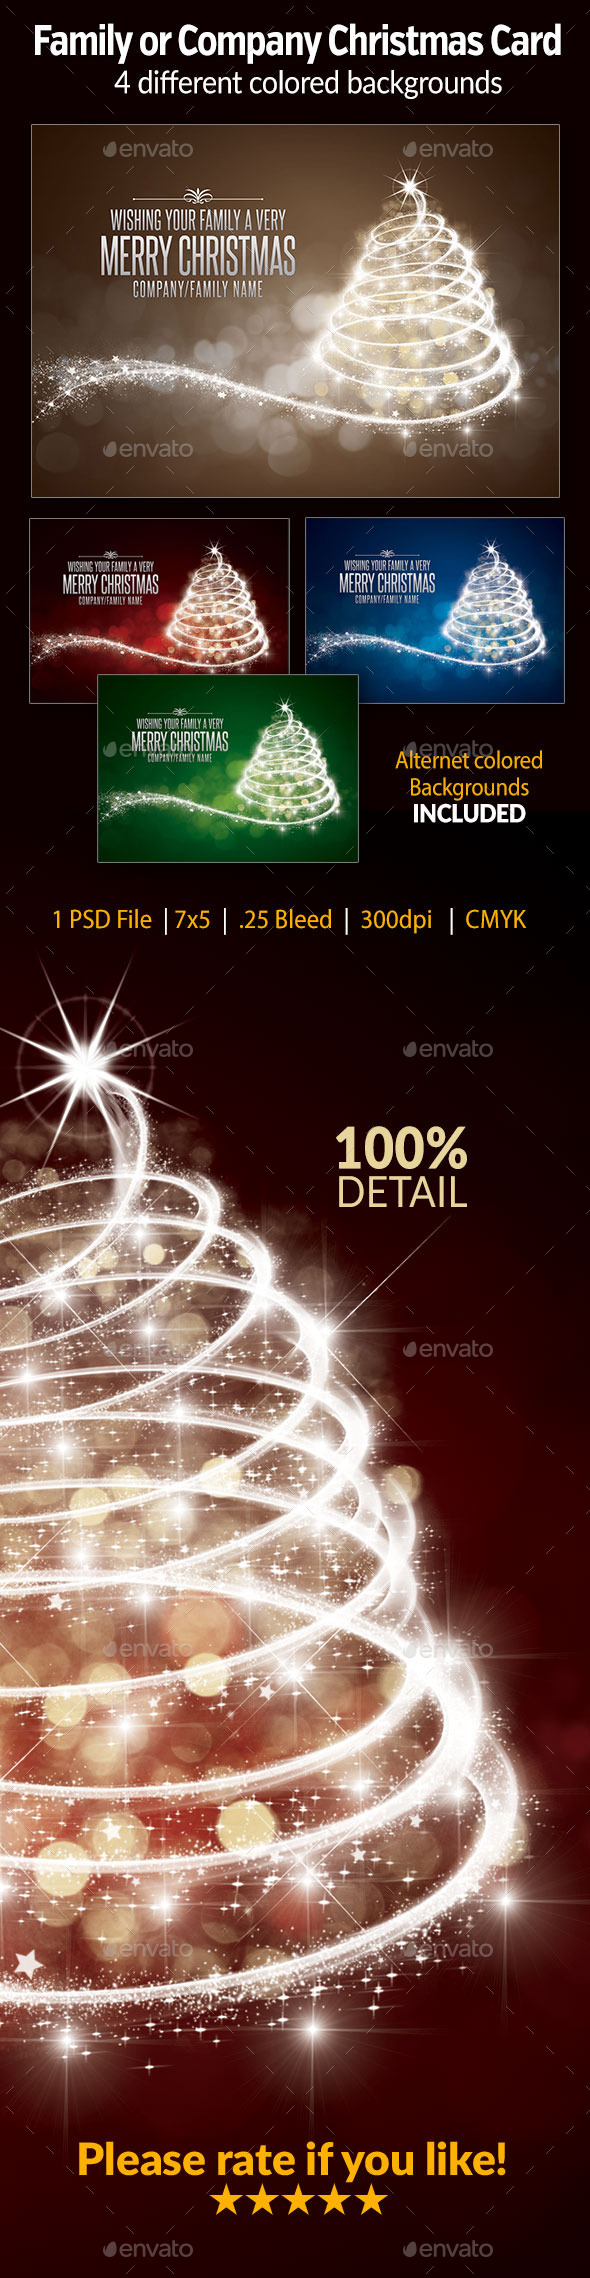 GraphicRiver Family or Company Christmas Card 9479232